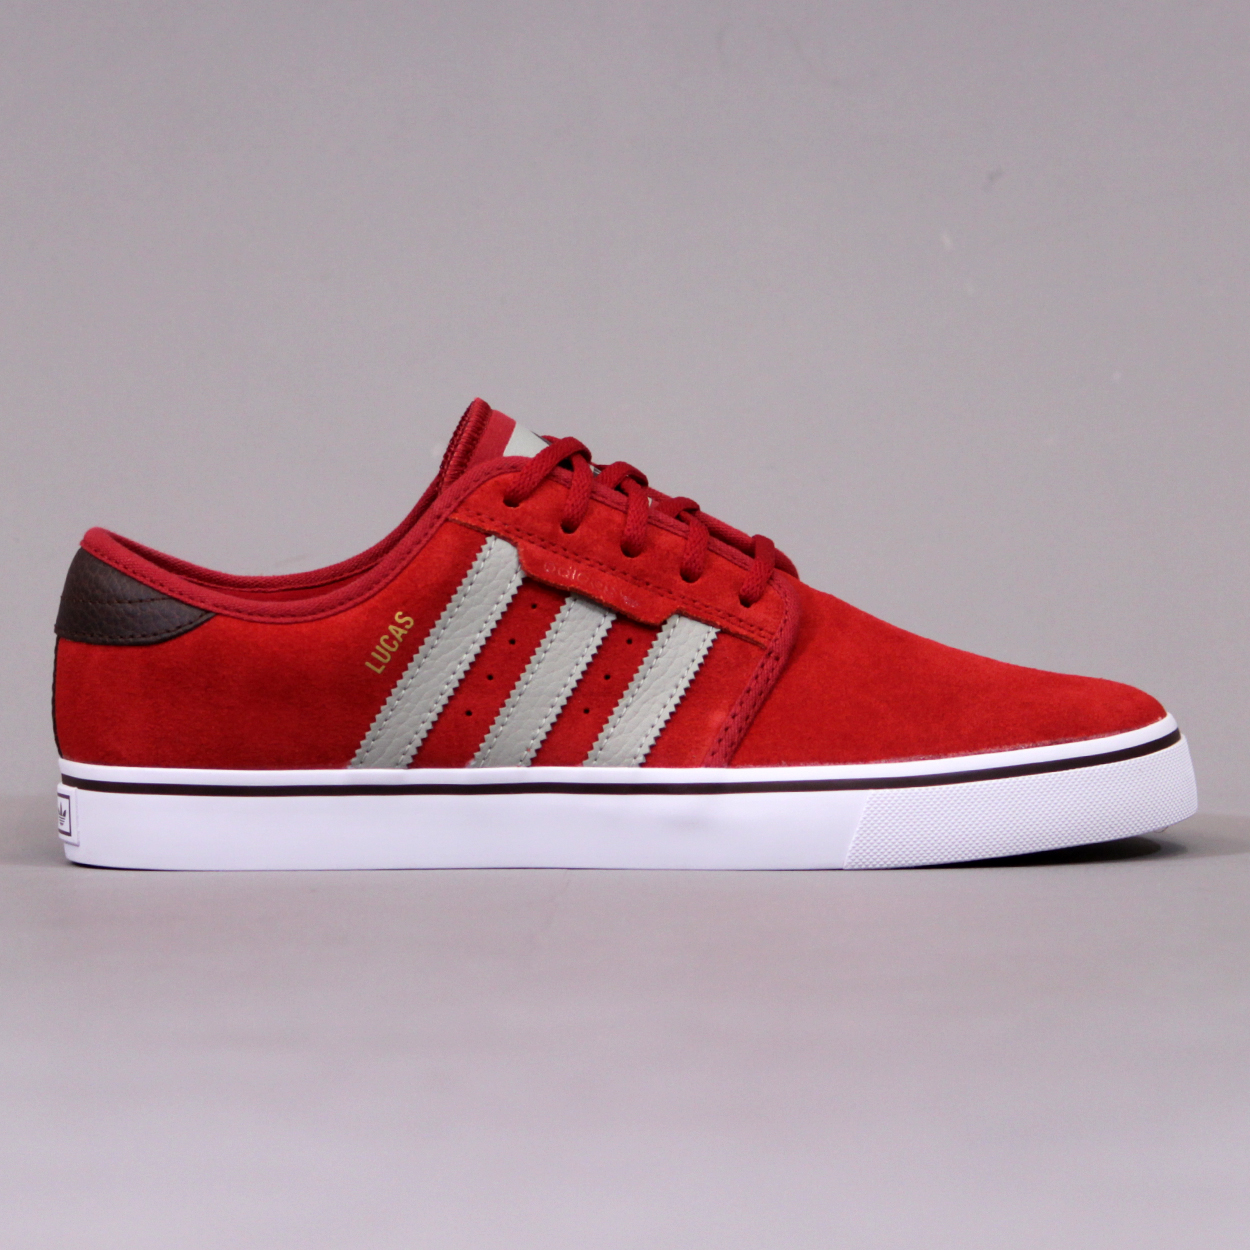 uk availability 04f91 92427 Adidas Seeley Pro Lucas Shoes - University Red and Sesame £33.00